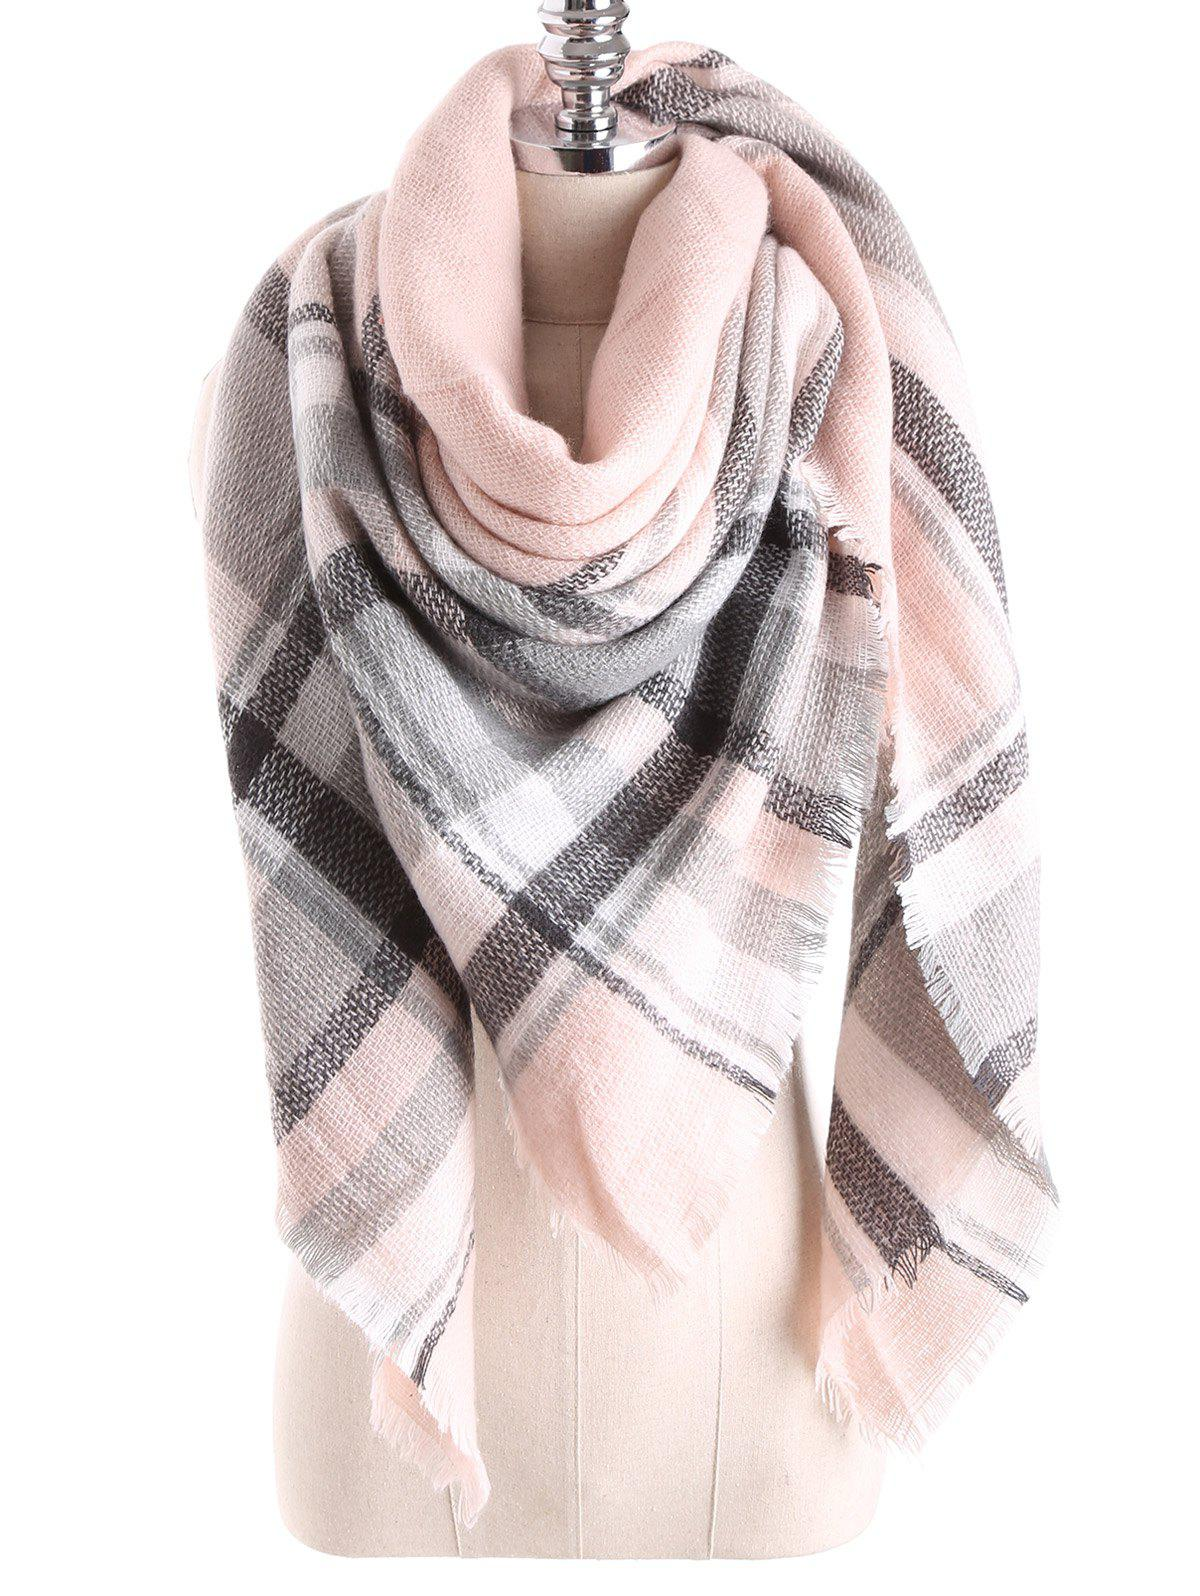 Warm Tartan Plaid Blanket Shawl ScarfACCESSORIES<br><br>Color: PEARL LIGHT PINK; Scarf Type: Scarf; Group: Adult; Gender: For Women; Style: Fashion; Material: Acrylic; Season: Fall,Winter; Scarf Length: 140CM; Scarf Width (CM): 140CM; Weight: 0.270kg; Package Contents: 1 x Scarf;